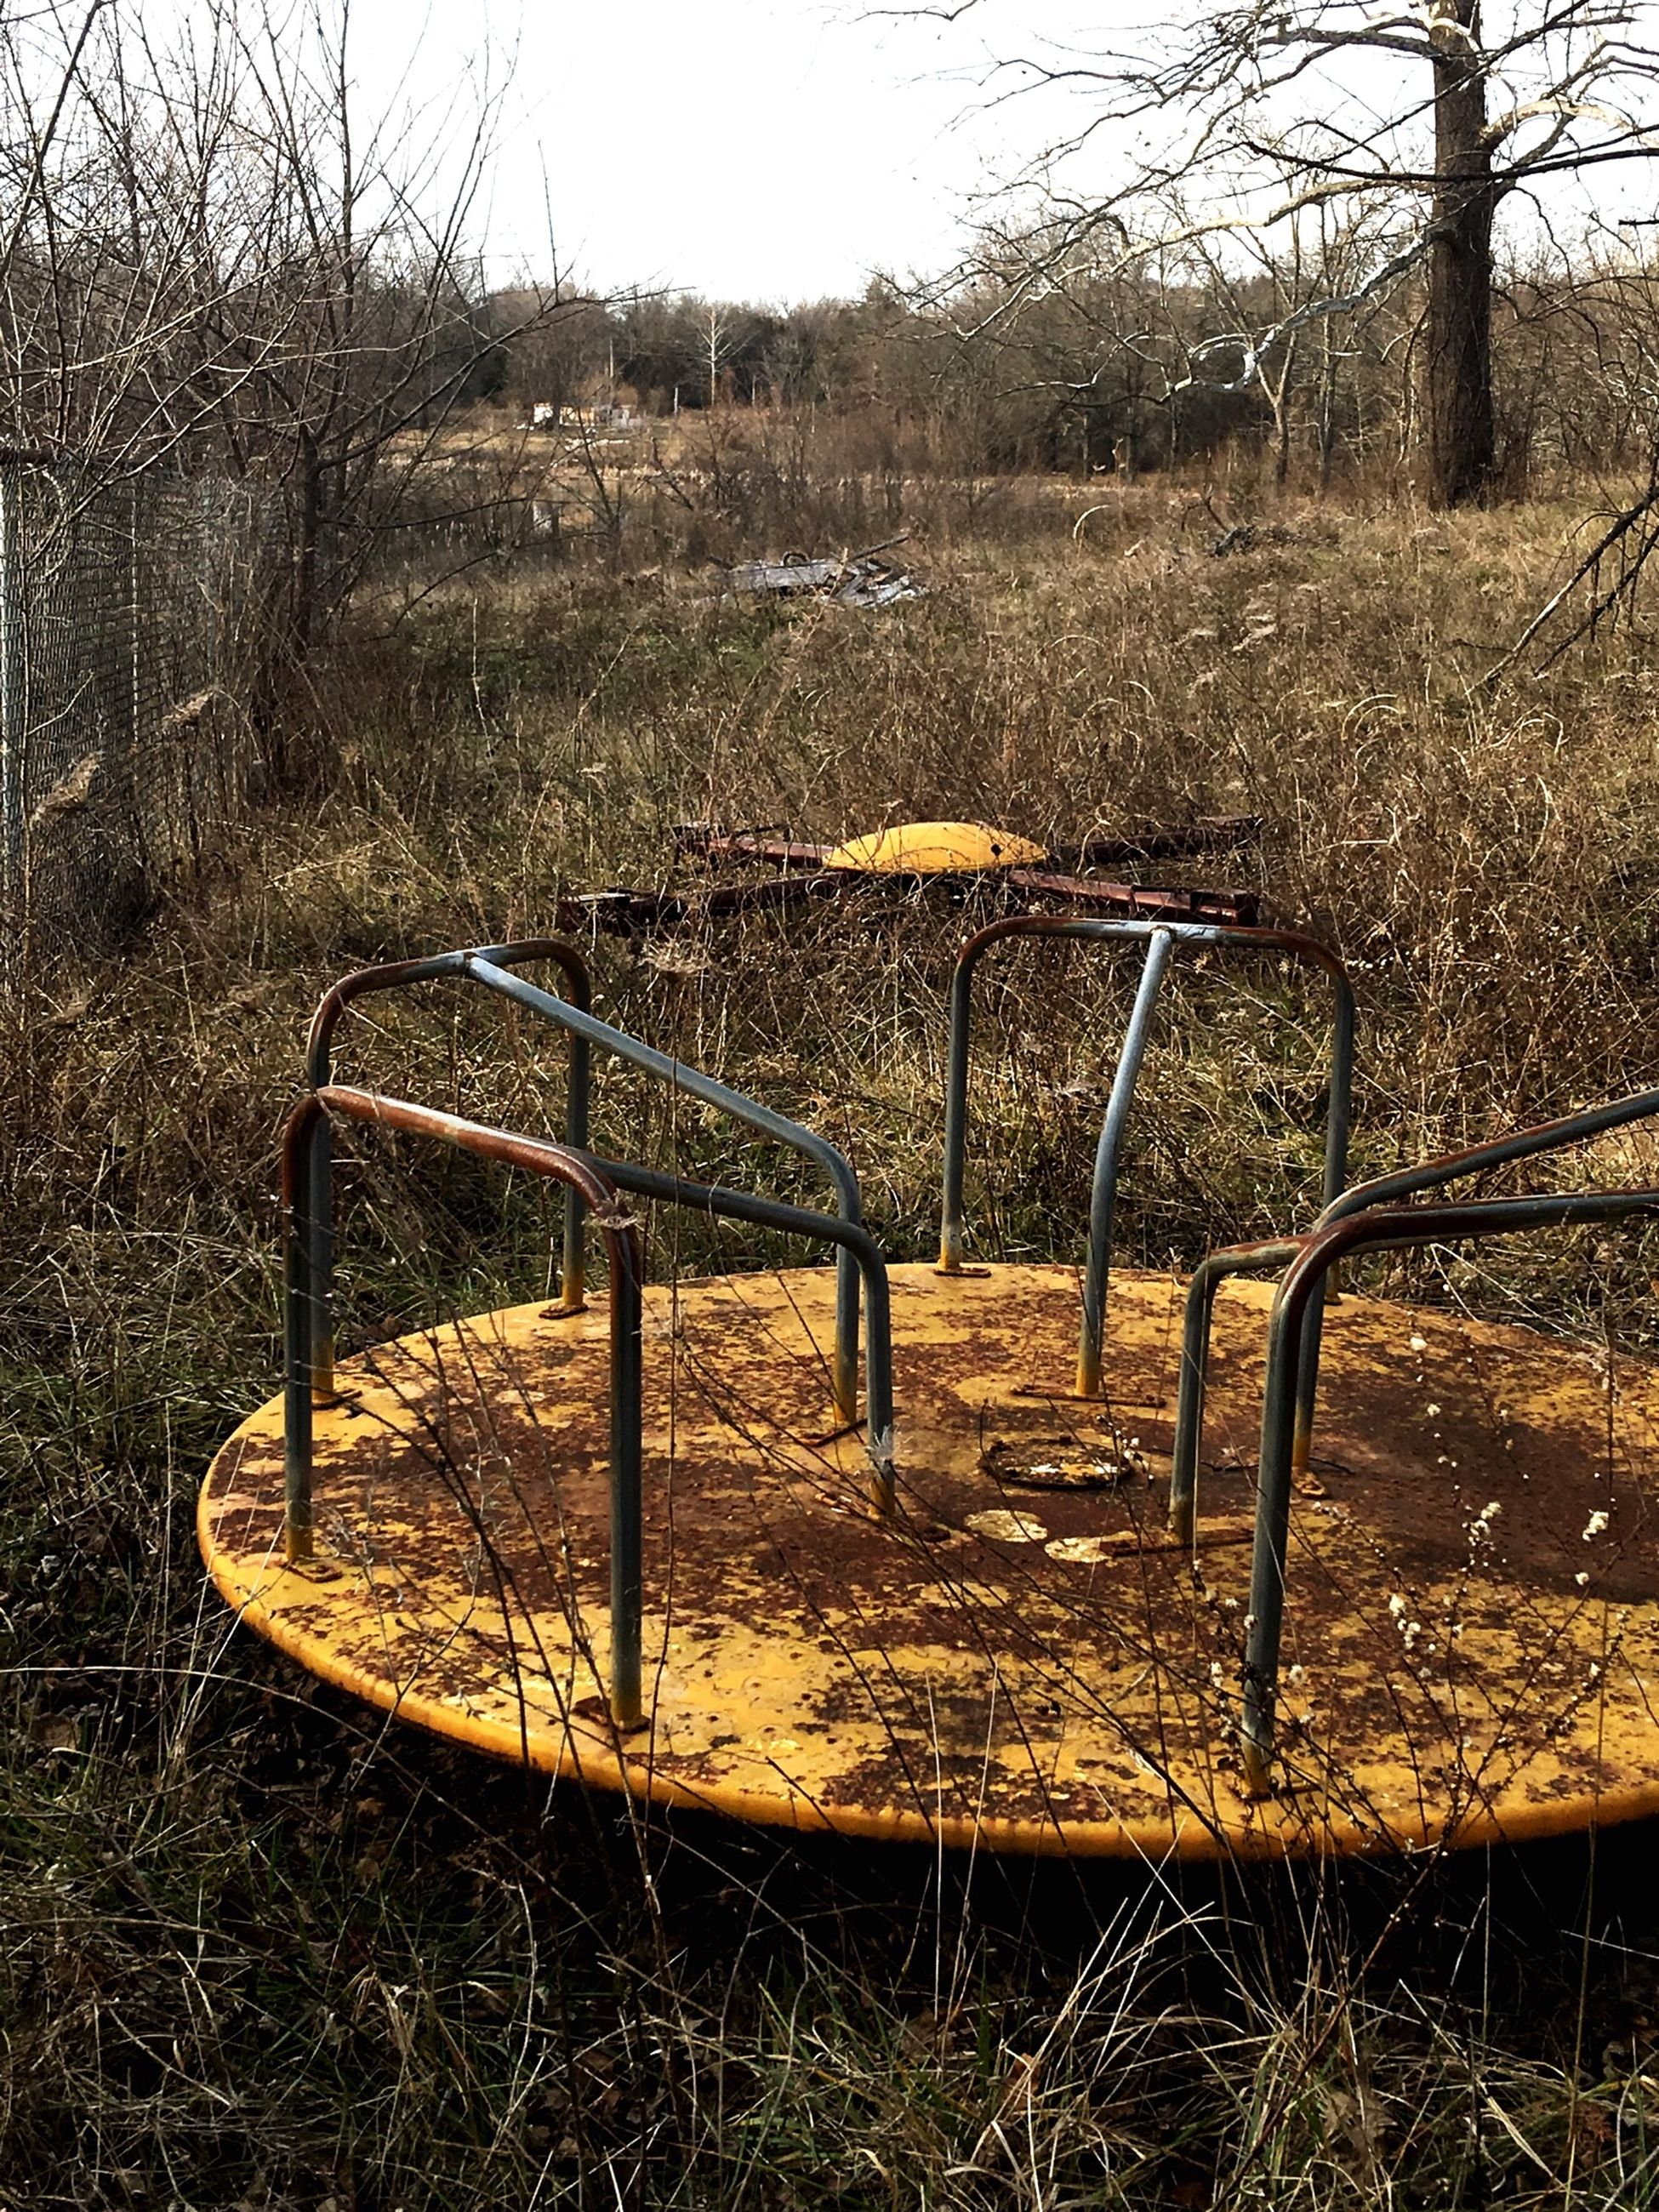 tree, field, absence, empty, metal, day, season, nature, tranquility, sunlight, fence, no people, bench, chair, grass, outdoors, autumn, dry, growth, plant